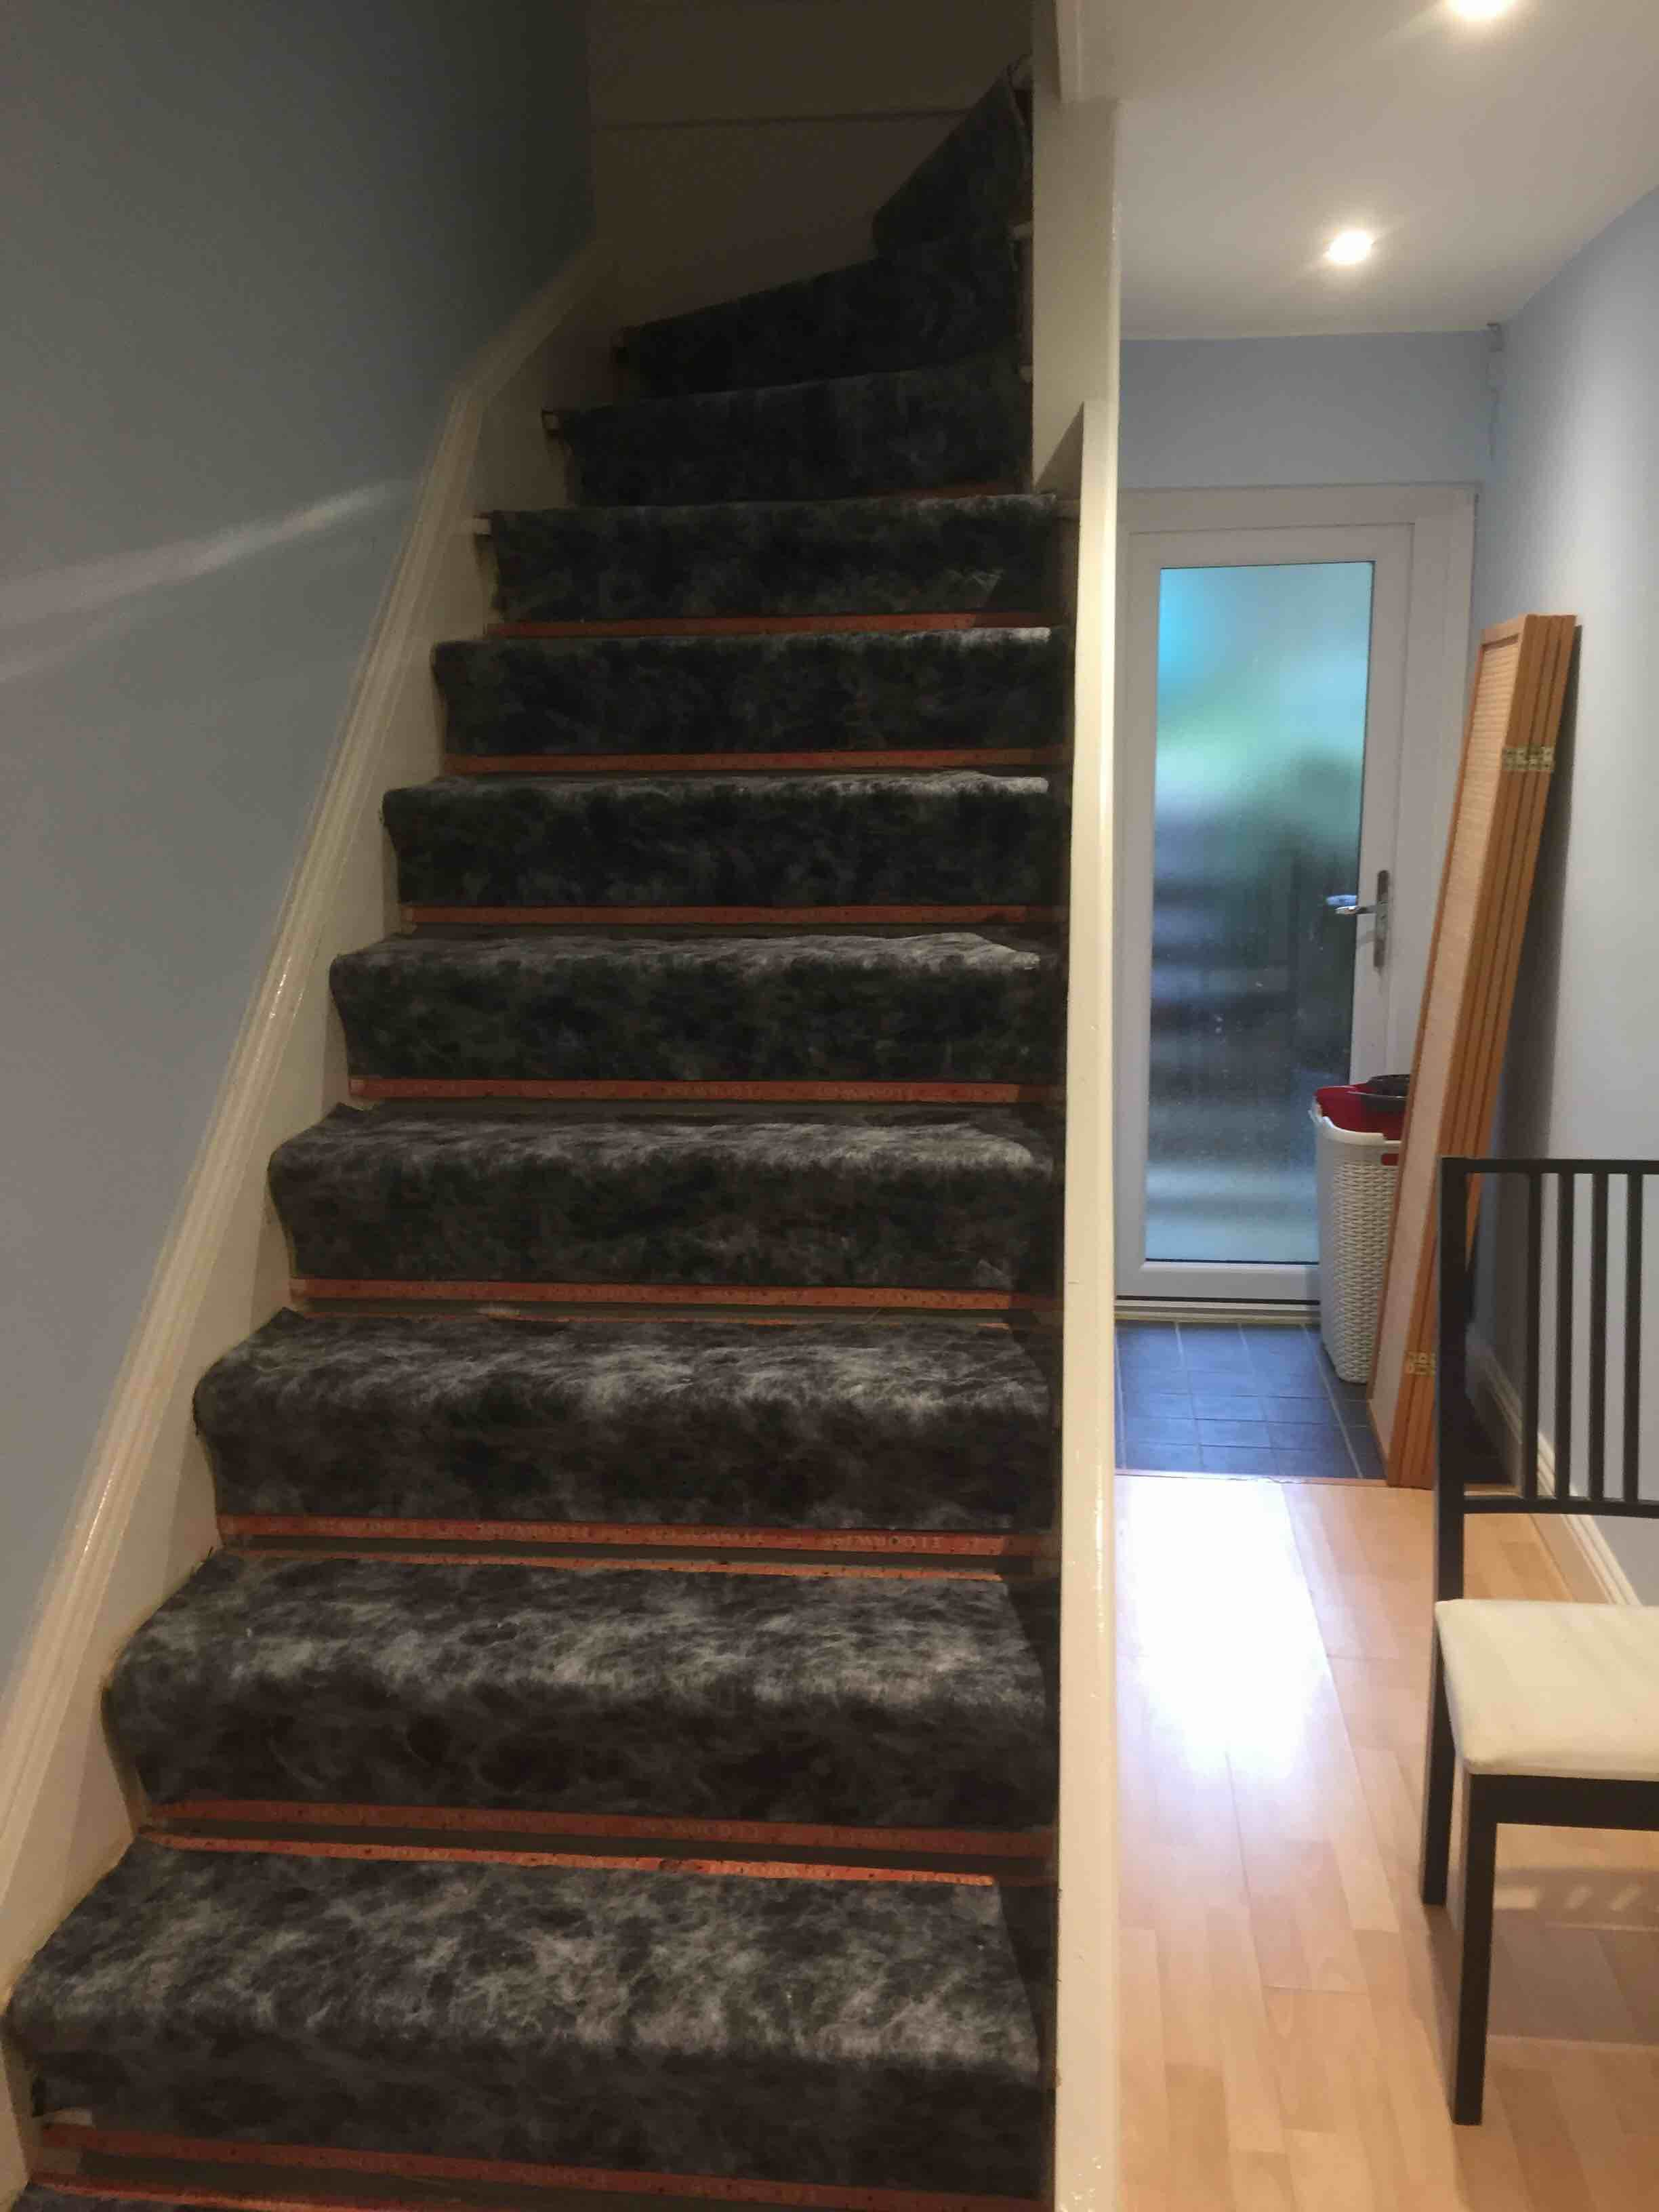 Pin By Cavendish Devere On A Grey Stair Carpets In A Home In London With Images Carpet Fitters Grey Stair Carpet Carpet Stairs